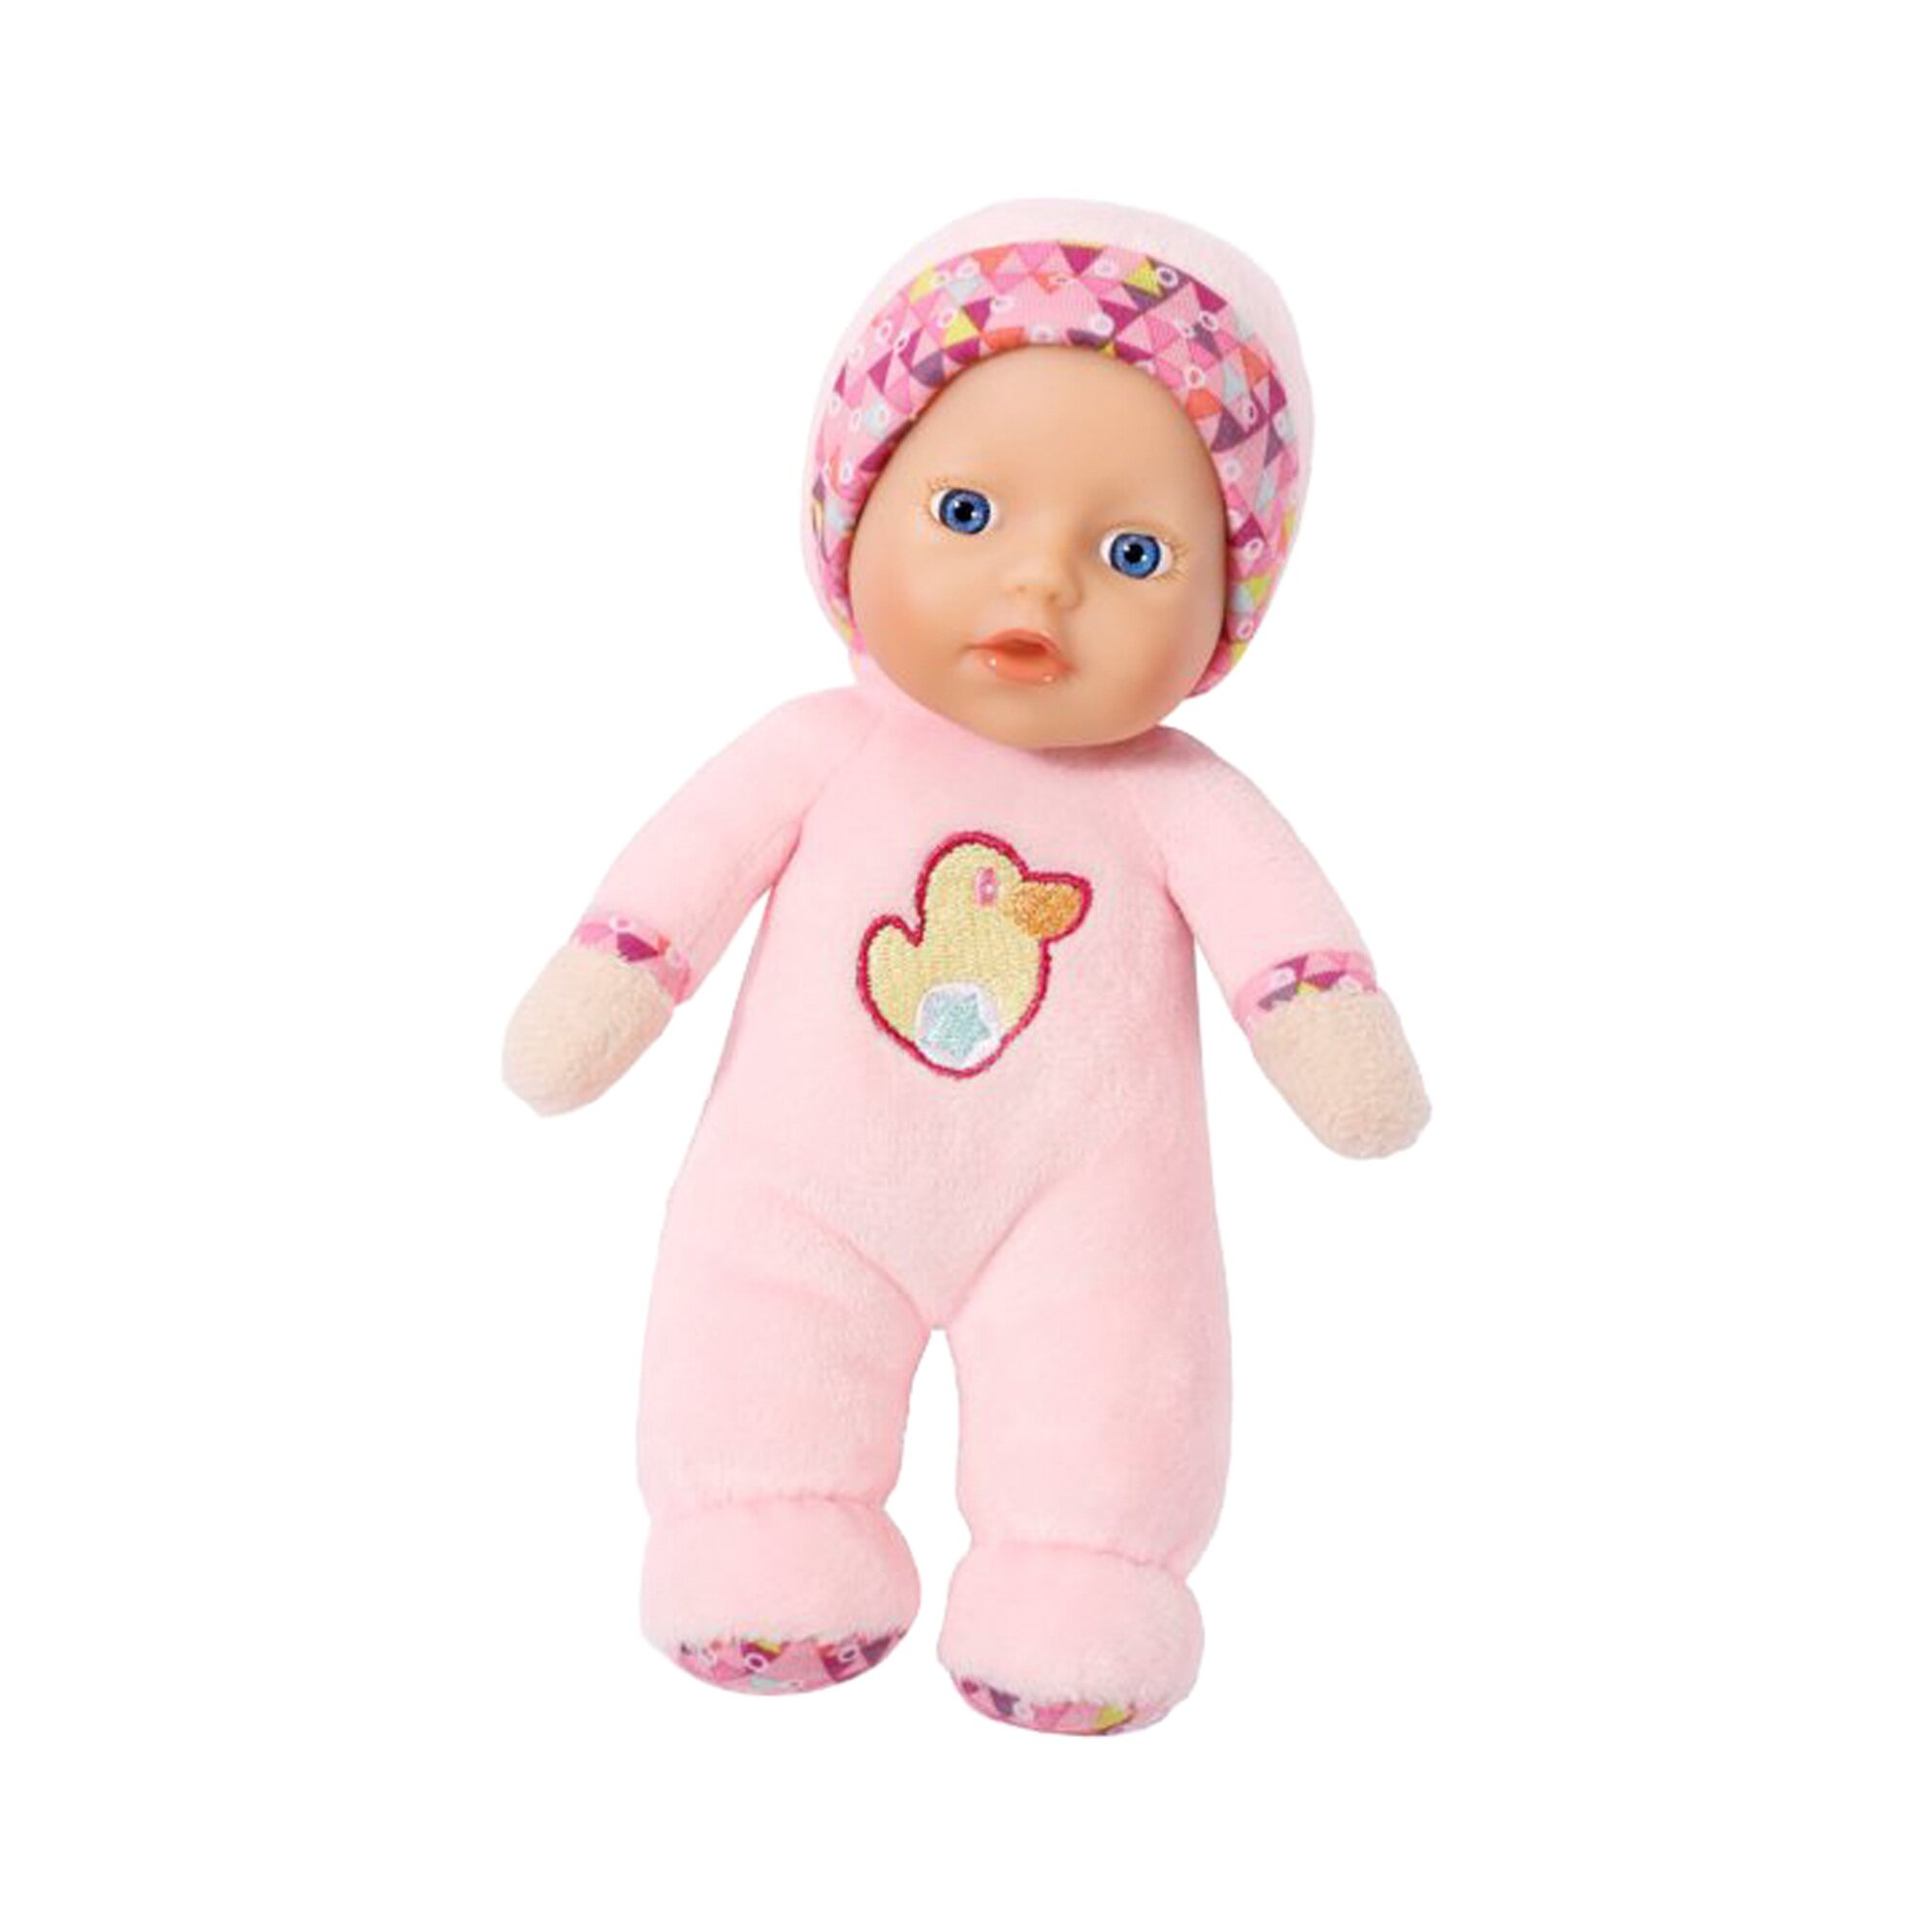 Baby Born For Babies Puppe BABY born® for babies 18 cm